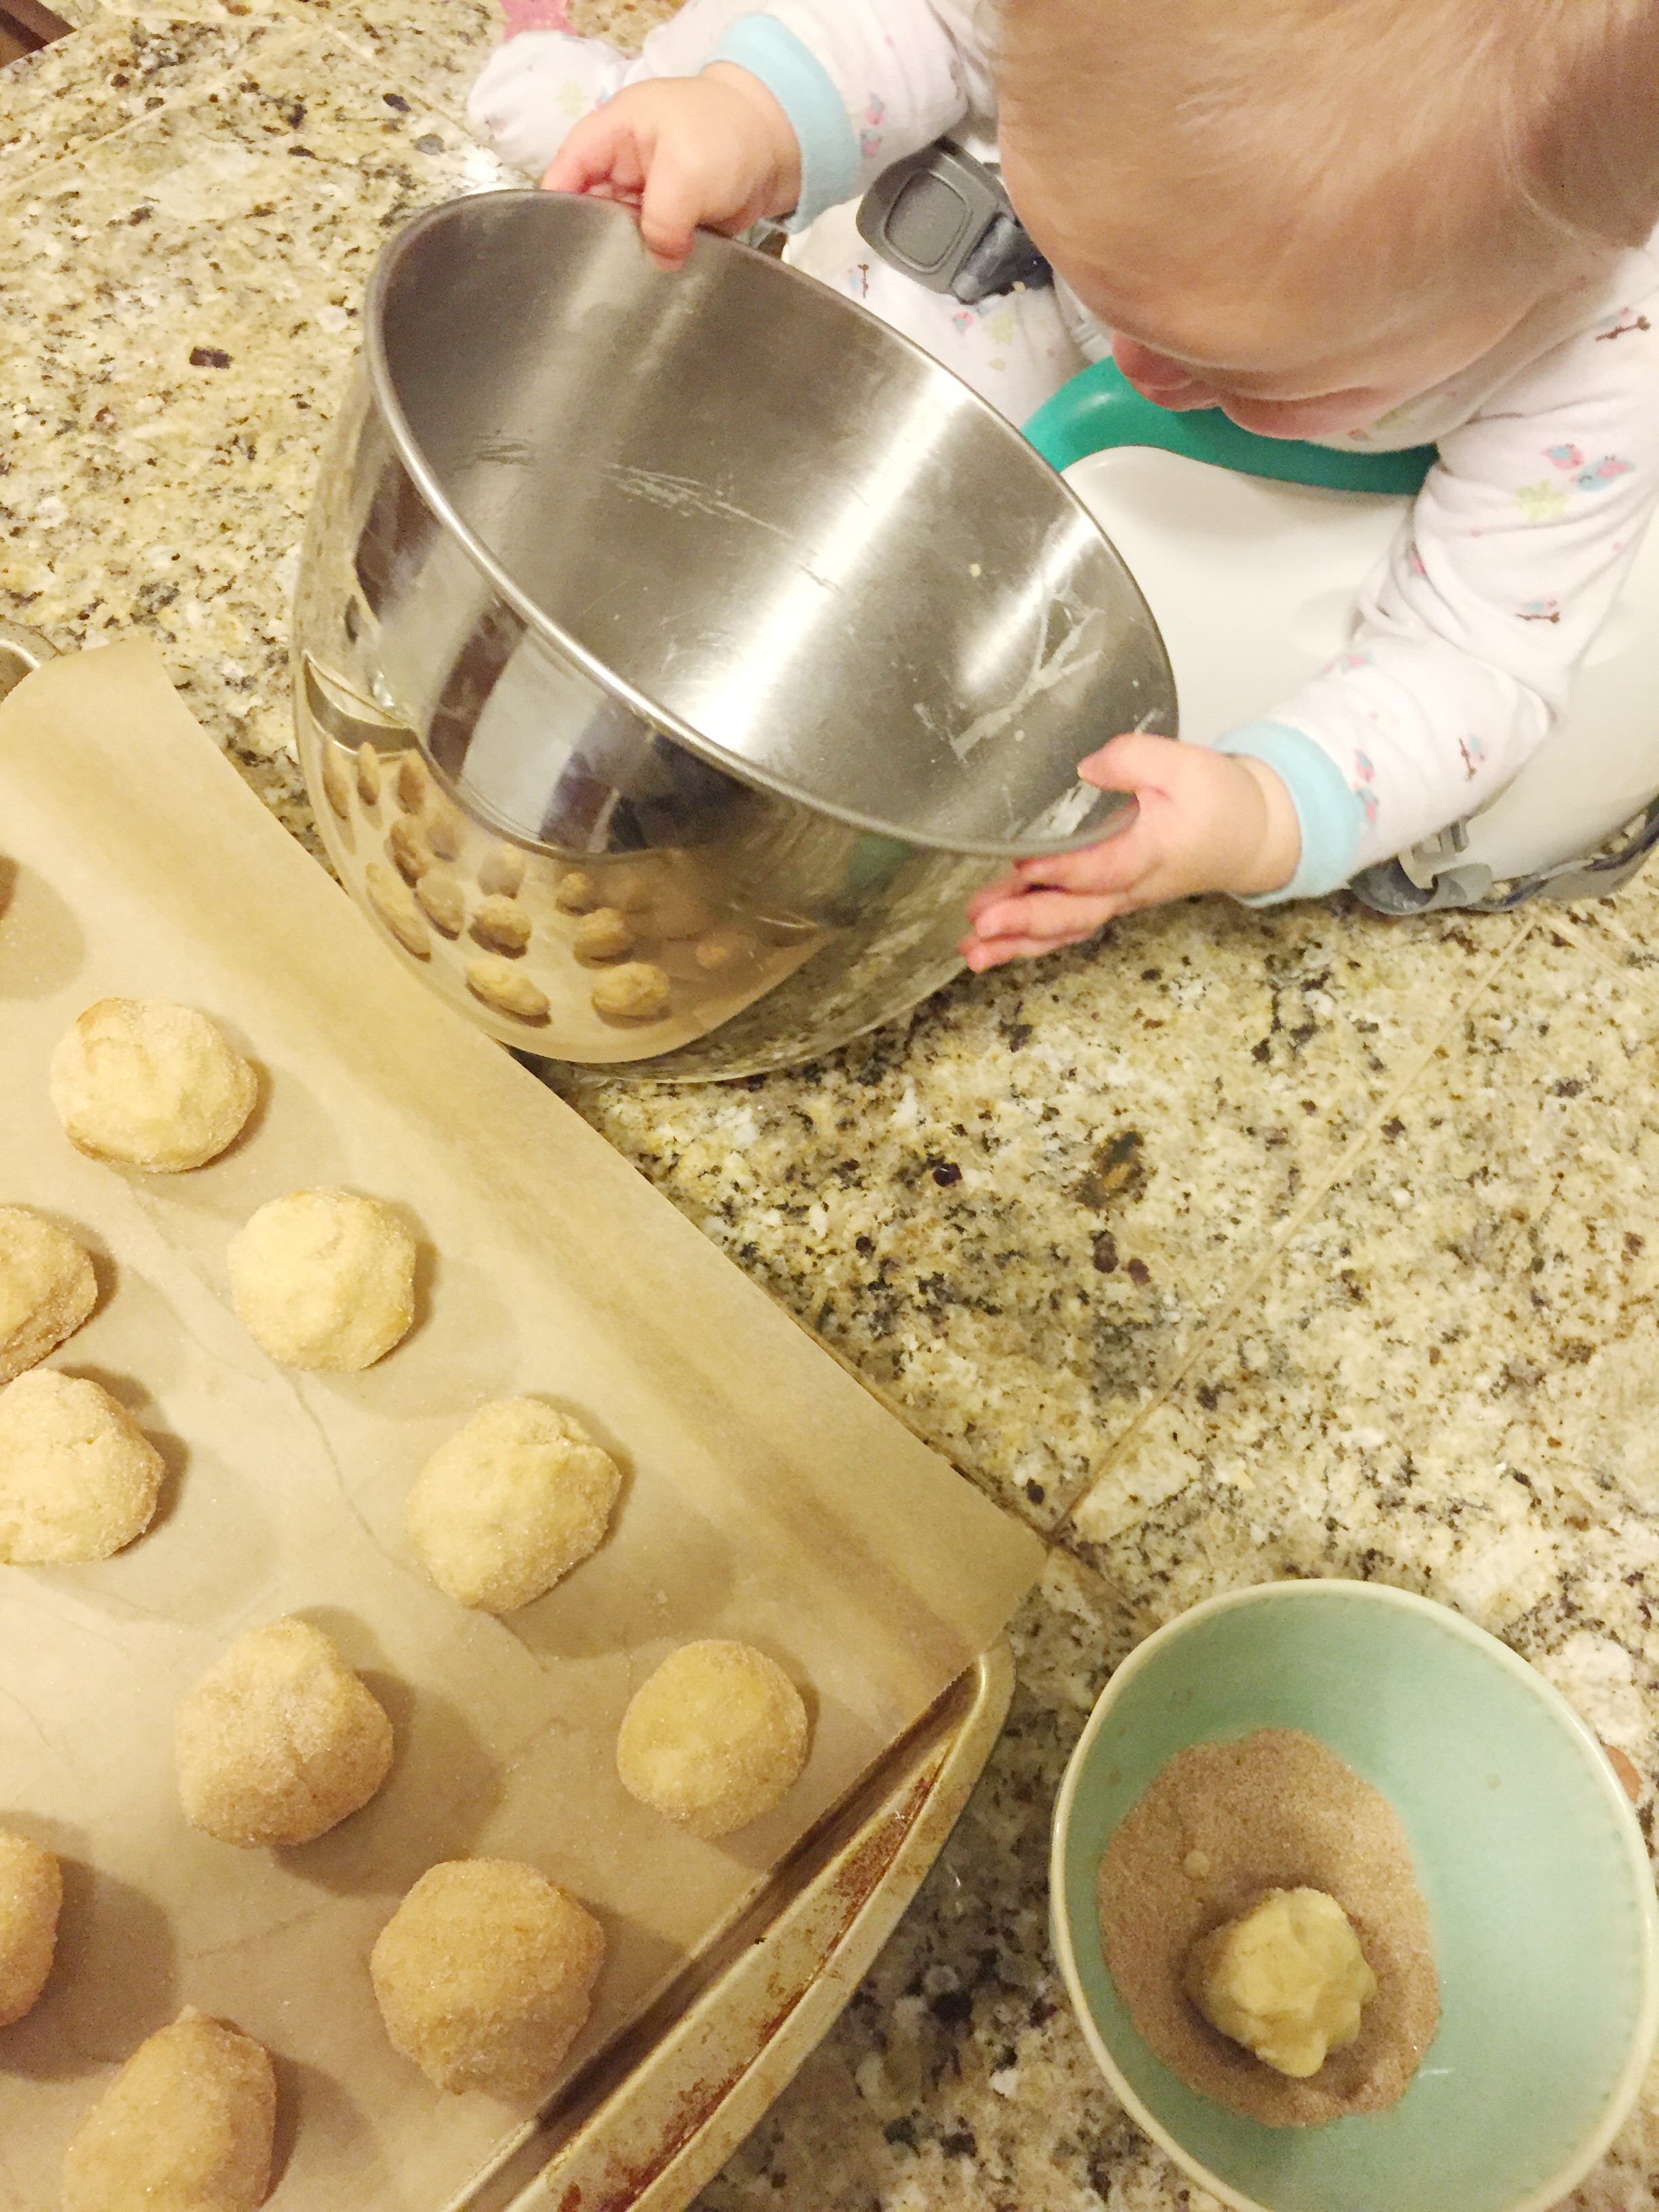 My snickerdoodle baking partner, Stella